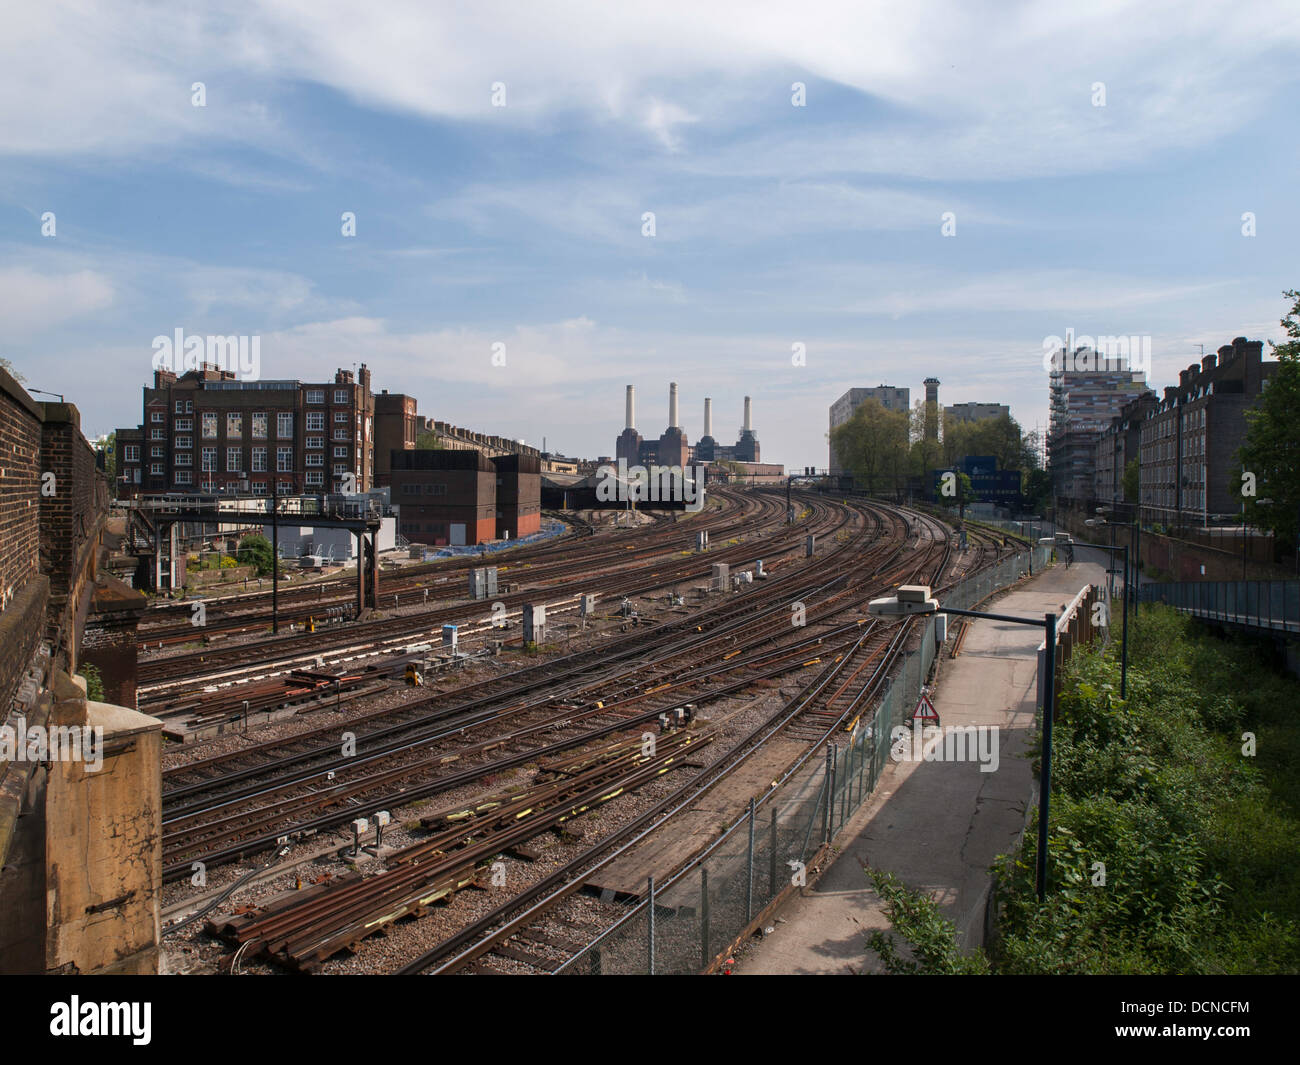 Battersea Power Station viewed from across the river beside busy railway lines. - Stock Image